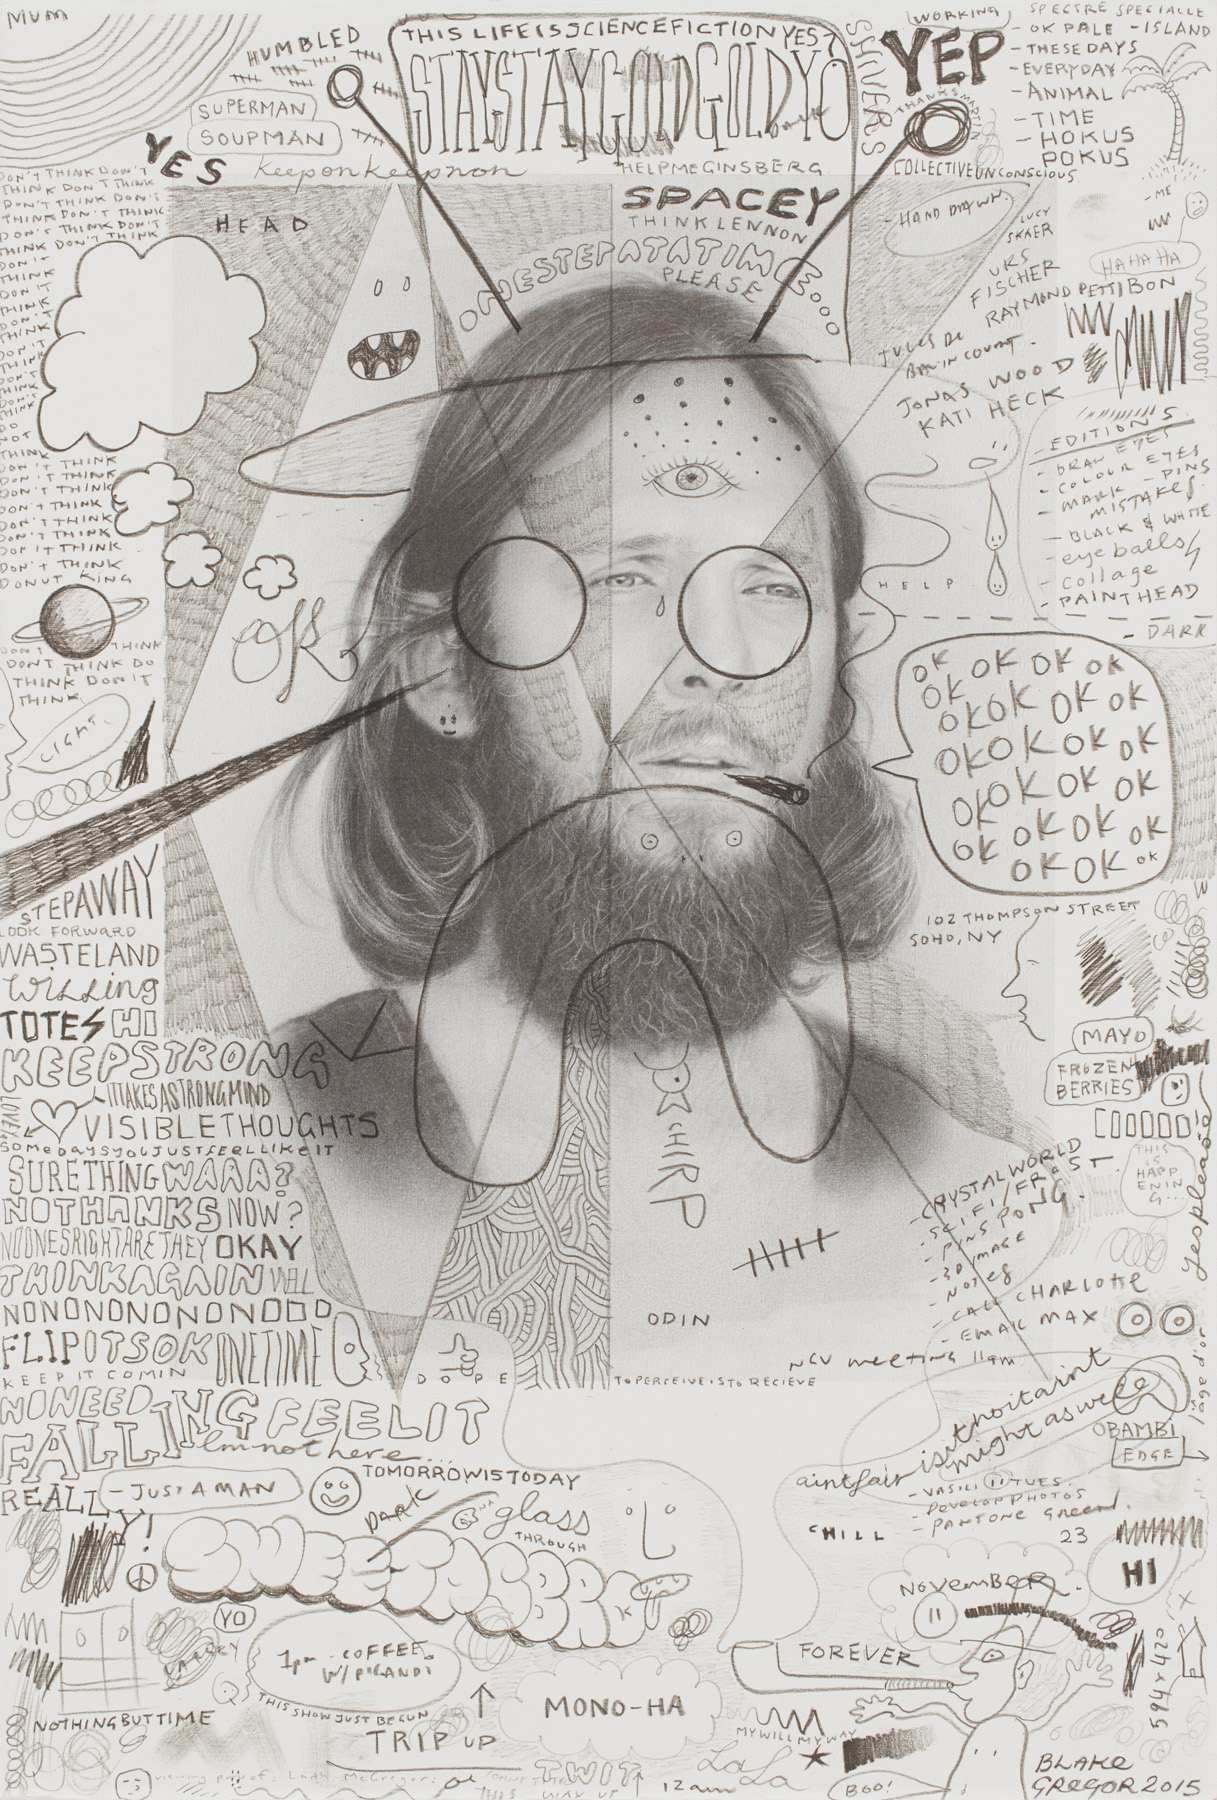 Laith McGregor,  Ohne Titel , lithograph, two lithographic plates, one hand-drawn by the artist and one photo-lithographic, printed in an edition of 20 plus proof, mage size 560 x 380 mm, paper size: 560 x 380 mm